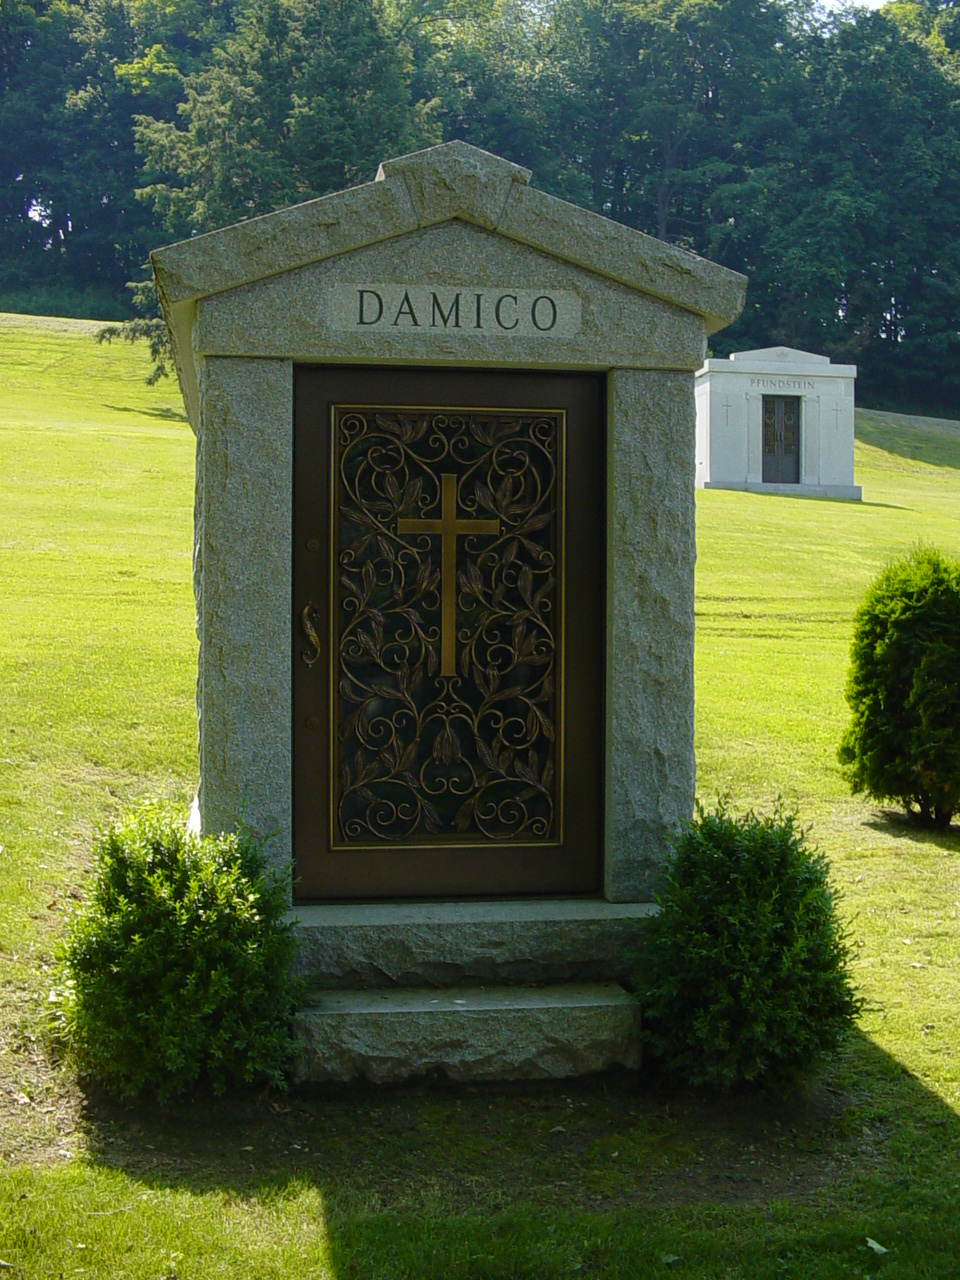 polchinski mausoleums Greenwich CT - D Amico Mausoleum